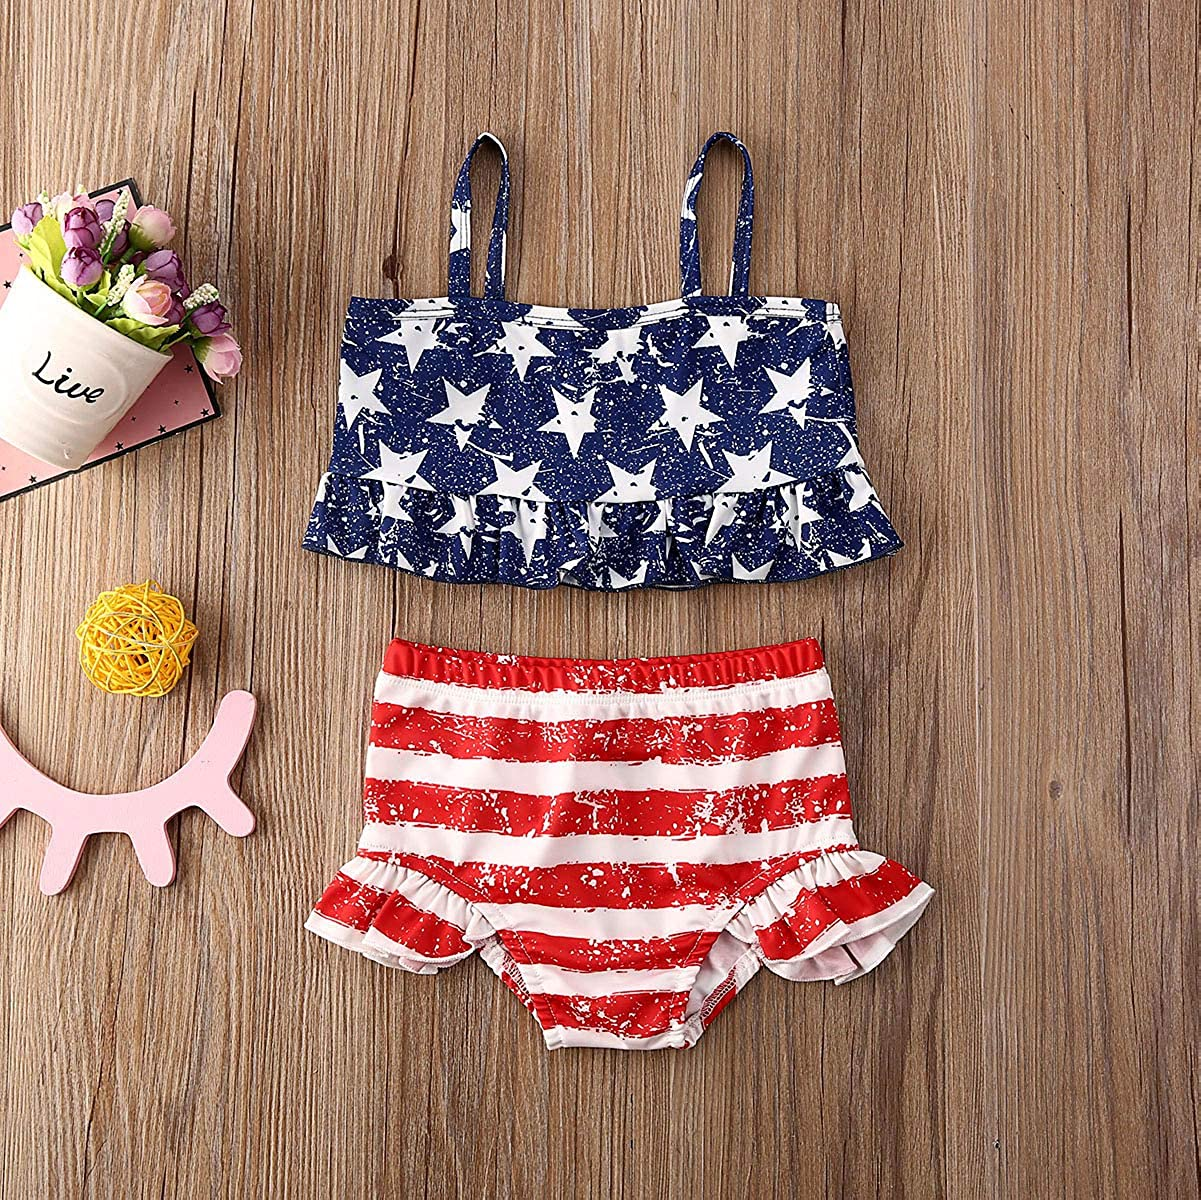 Toddler Baby Girls 2 Pieces Swimsuit Set Swimwear Tops Bikini Bottom Beachwear Bathing Suit